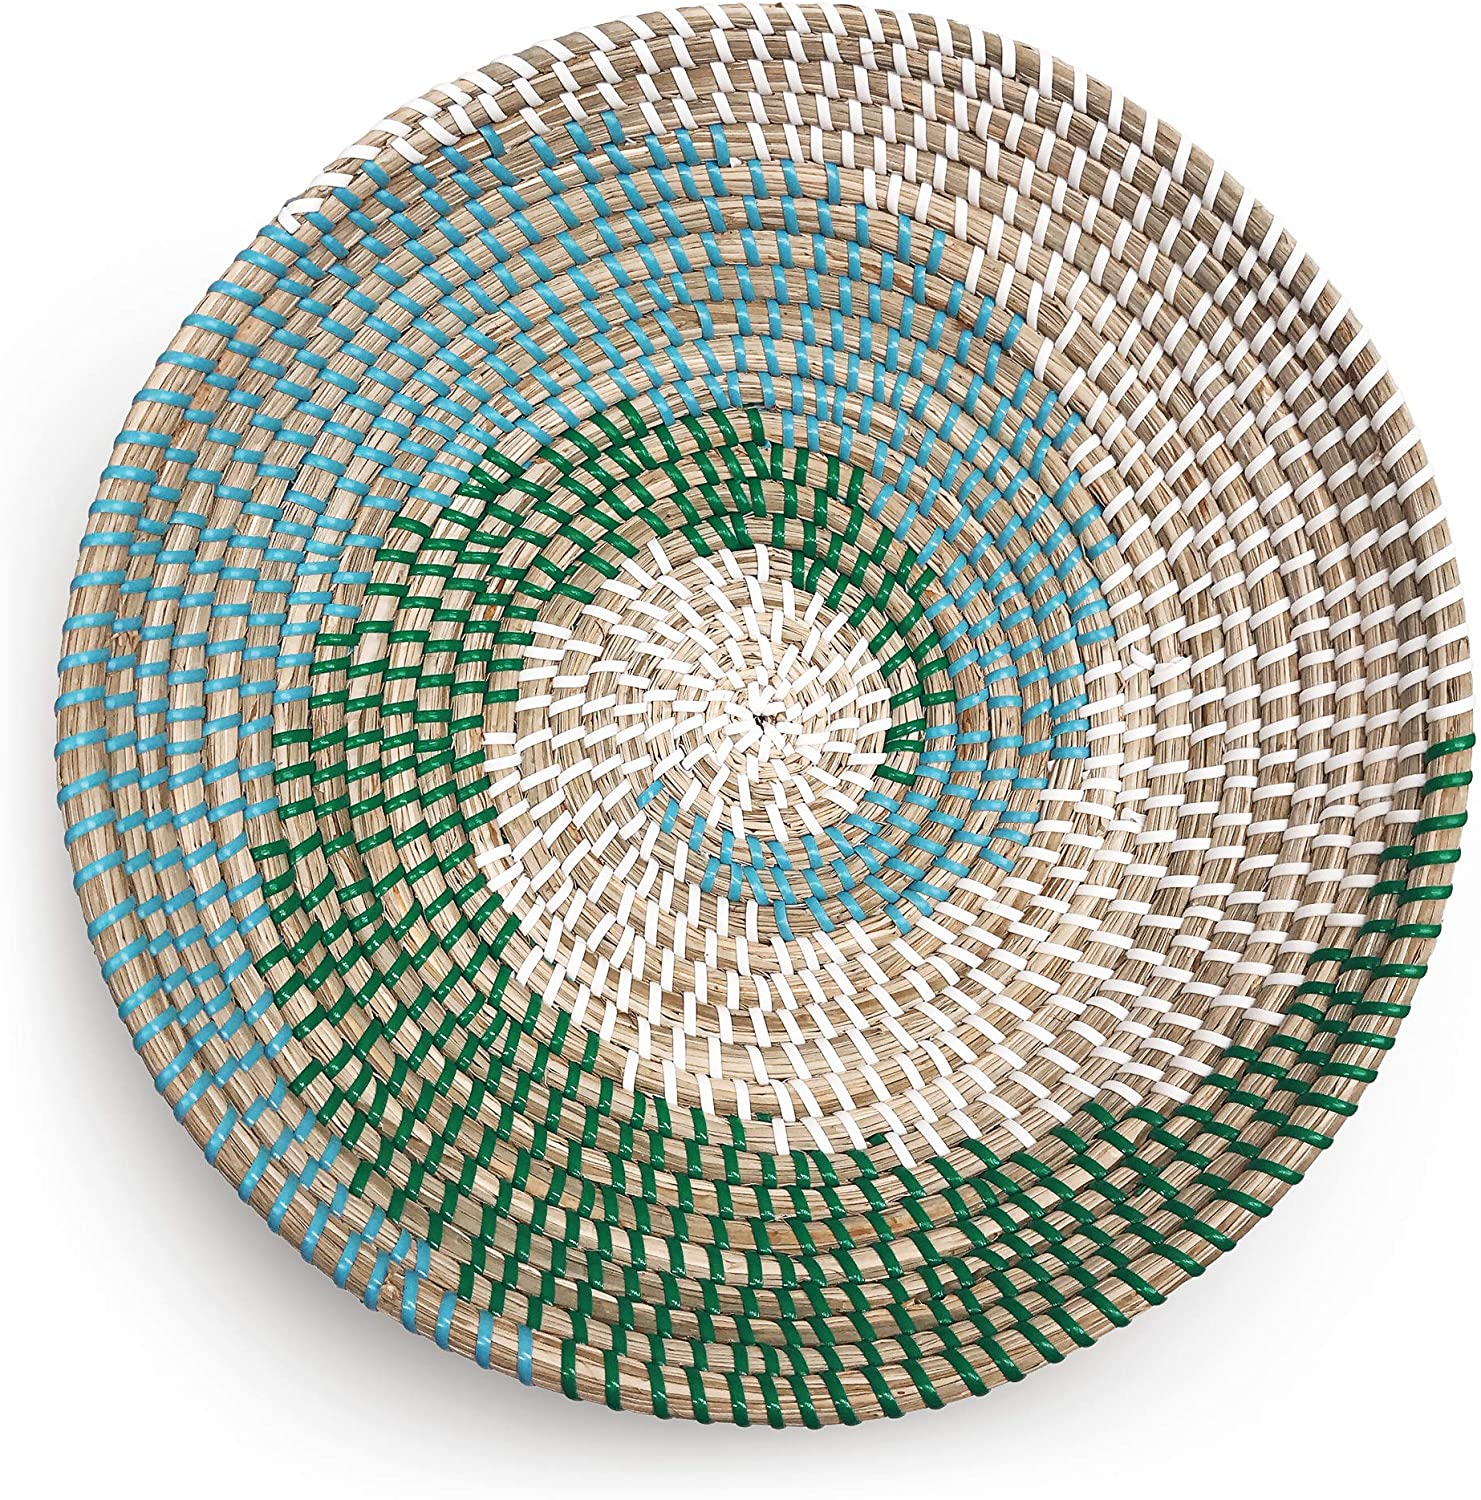 Fauxliage Woven Basket Bowl Wall Hanging | Handmade Decorative Bowl with Hook | Chic Boho Décor, Ideal Housewarming Gift for Her | Green and Blue Seagrass 13 Inches